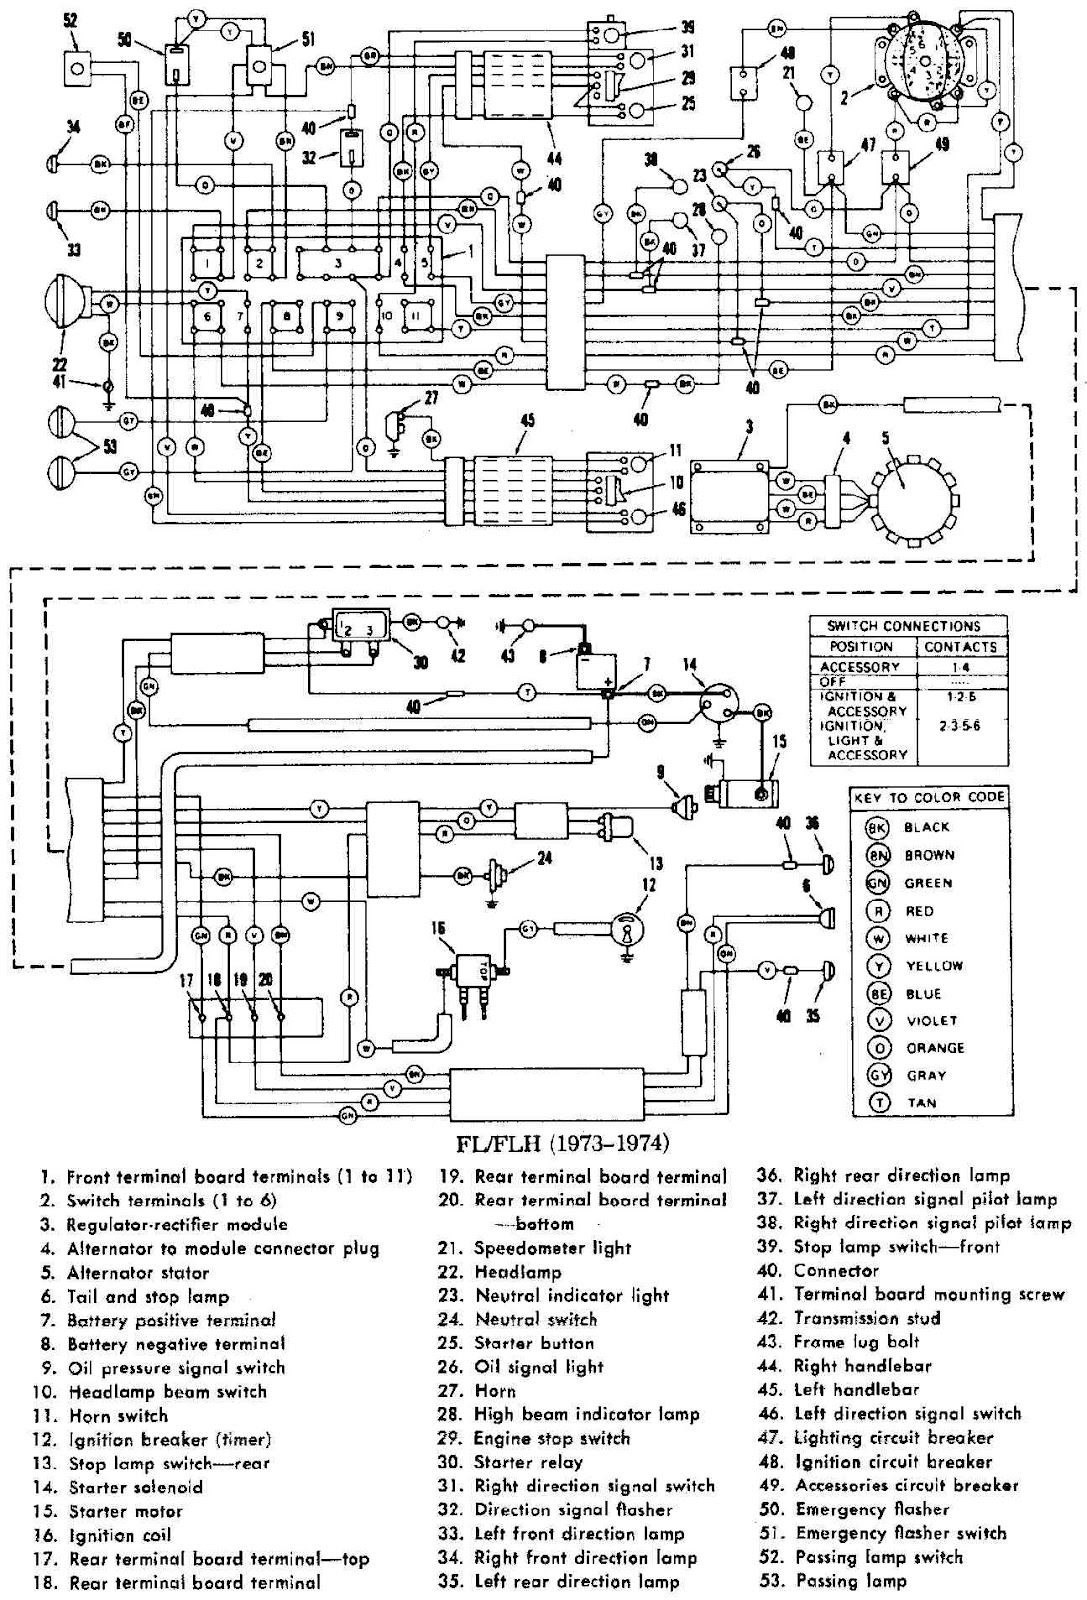 harley davidson fl flh 1973 74 motorcycle electrical 1989 flht wiring diagram Light Switch Wiring Diagram